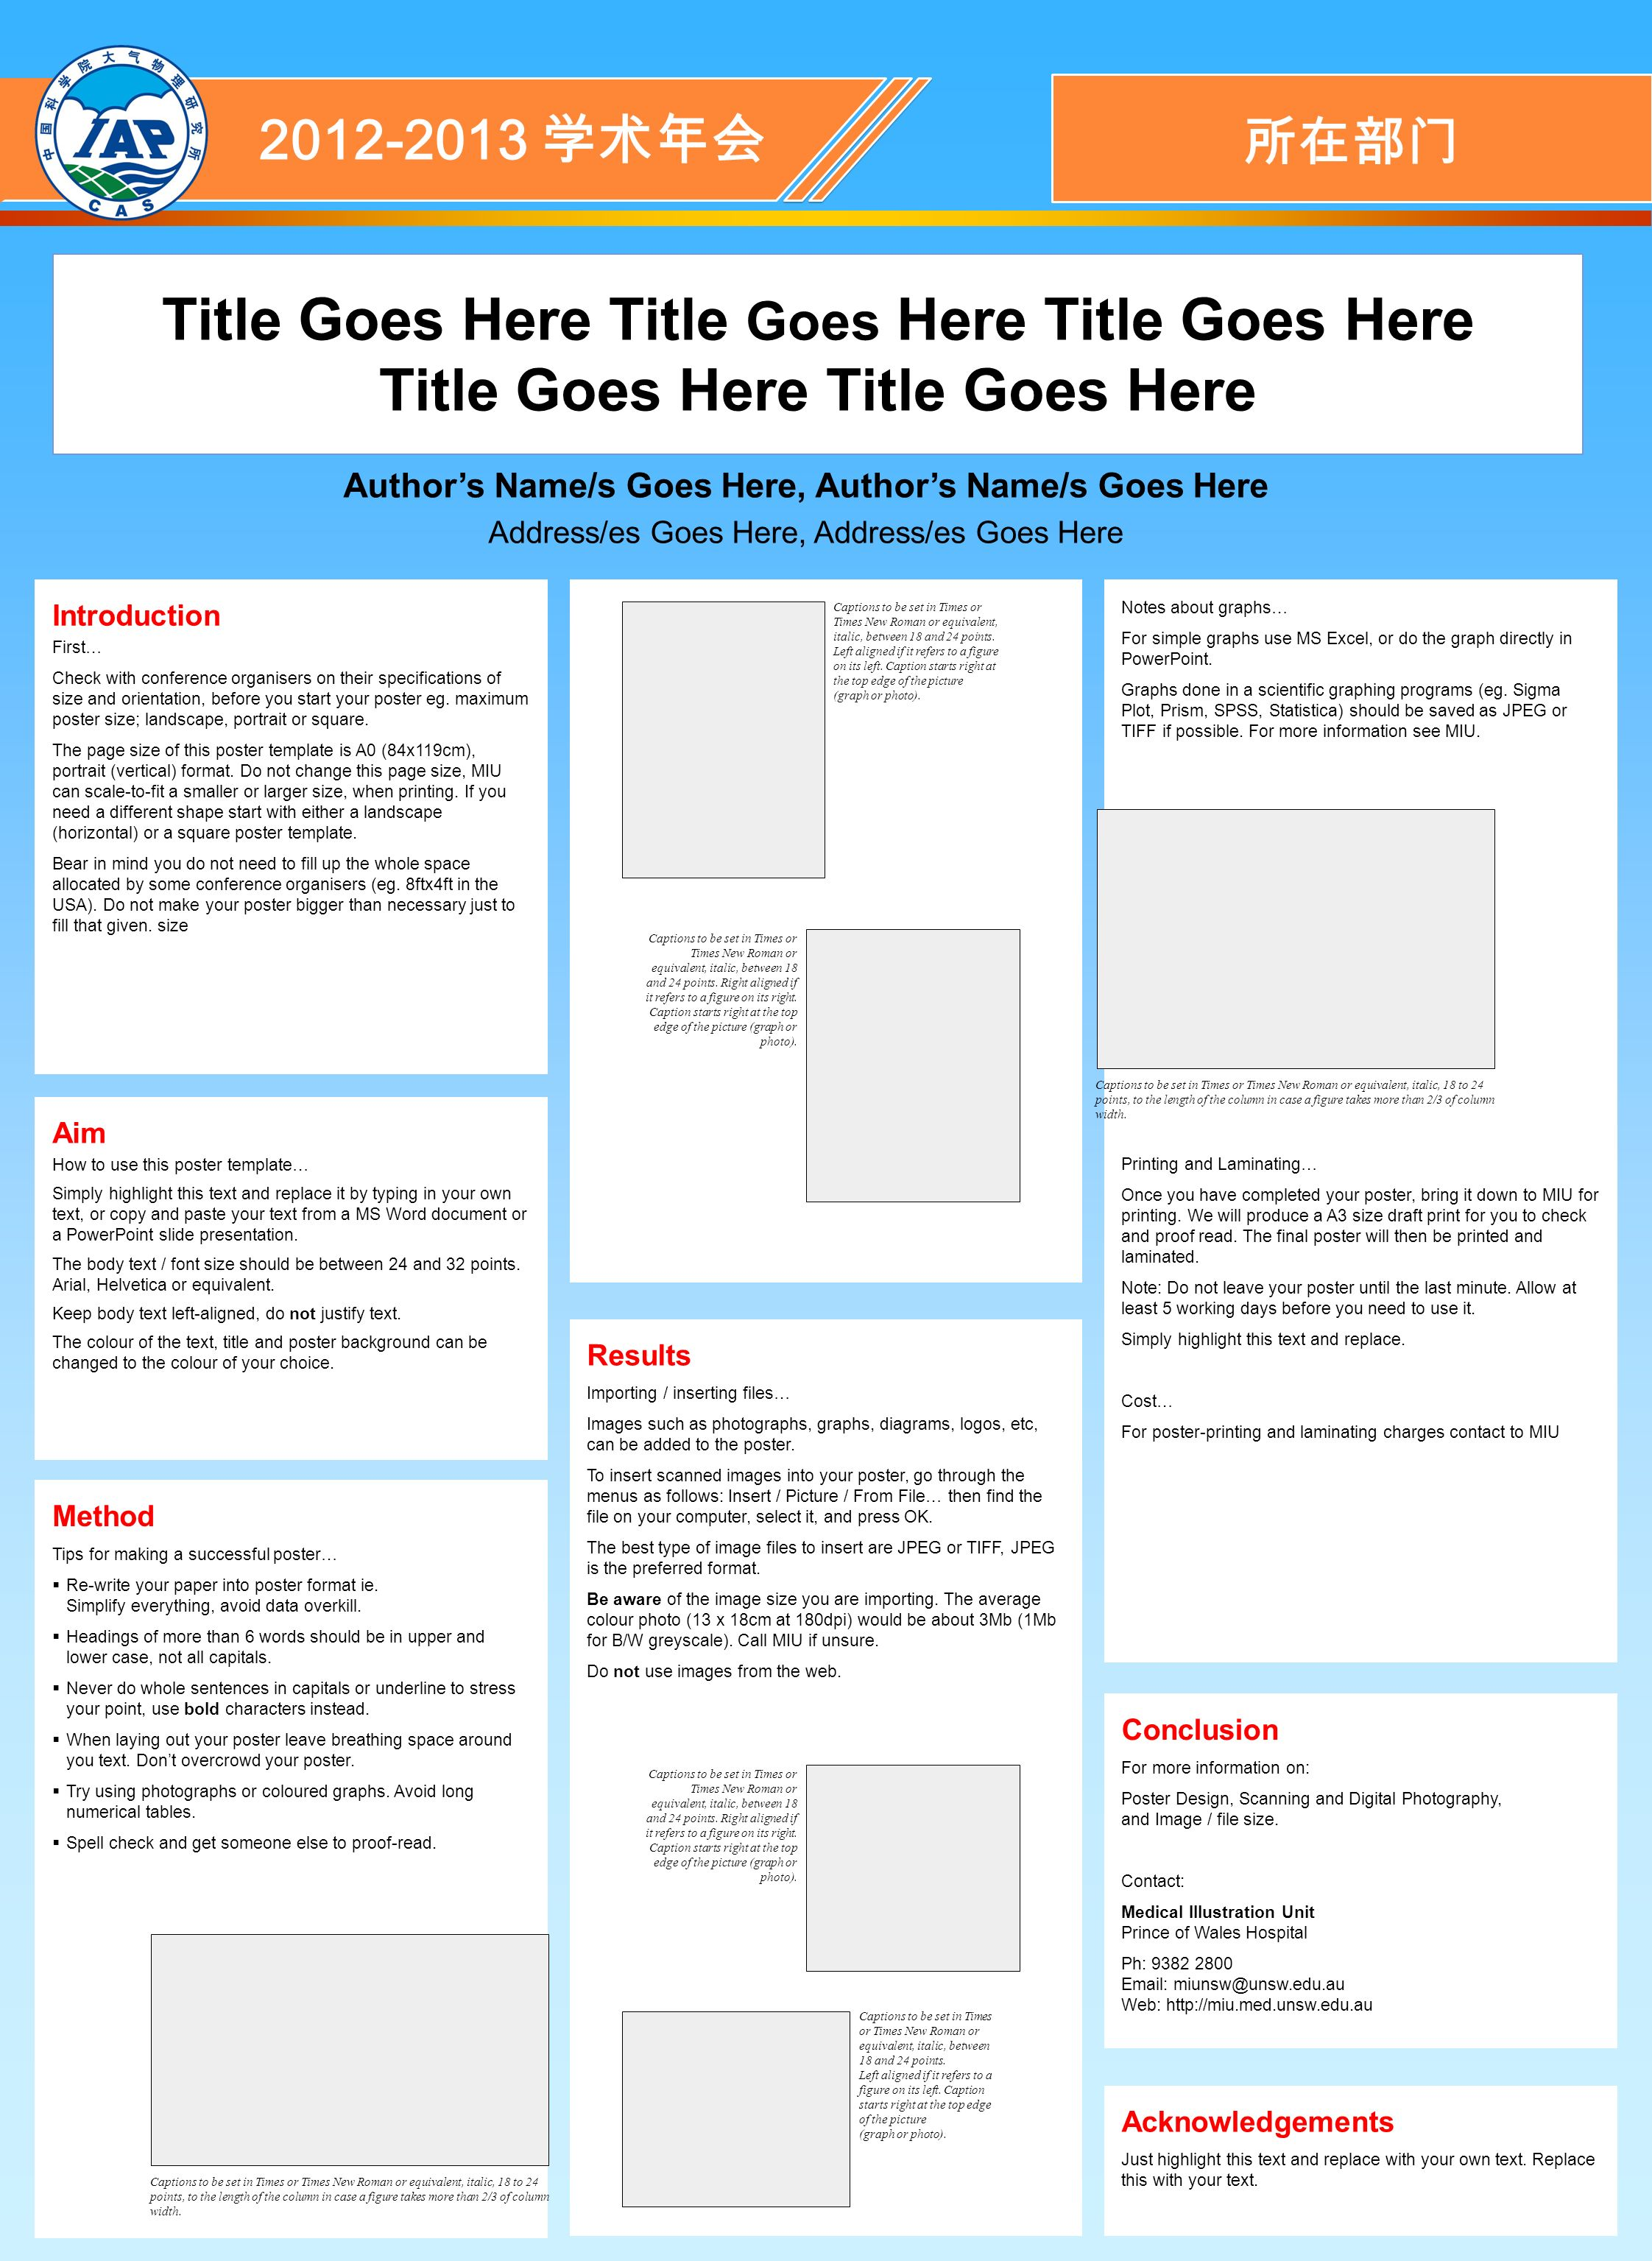 A0 poster template powerpoint choice image templates example microsoft powerpoint poster templates gallery templates example a0 poster template powerpoint images templates example free download toneelgroepblik Images